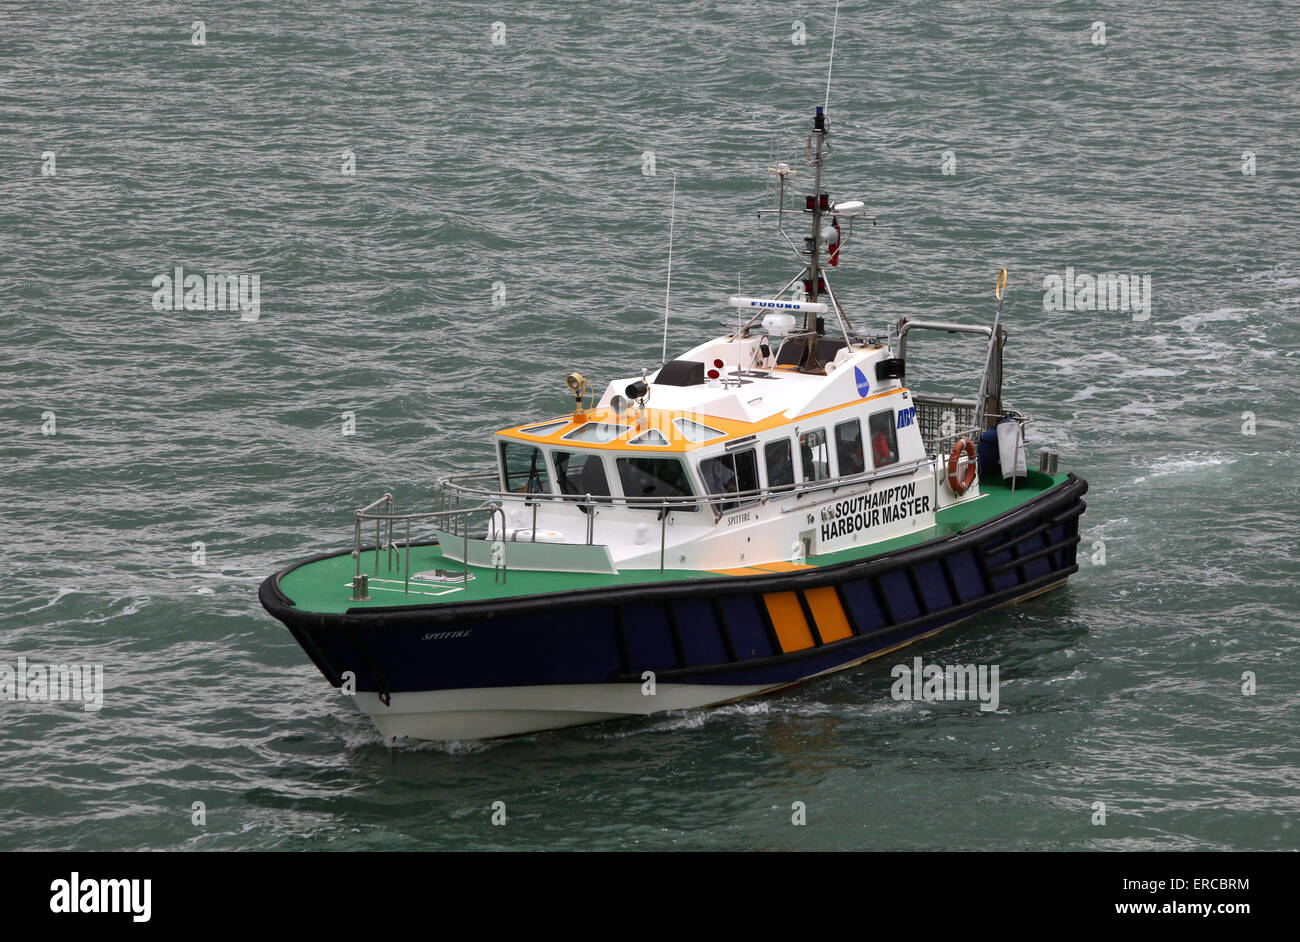 Southampton Harbour Master boat in Southampton Waters - Stock Image